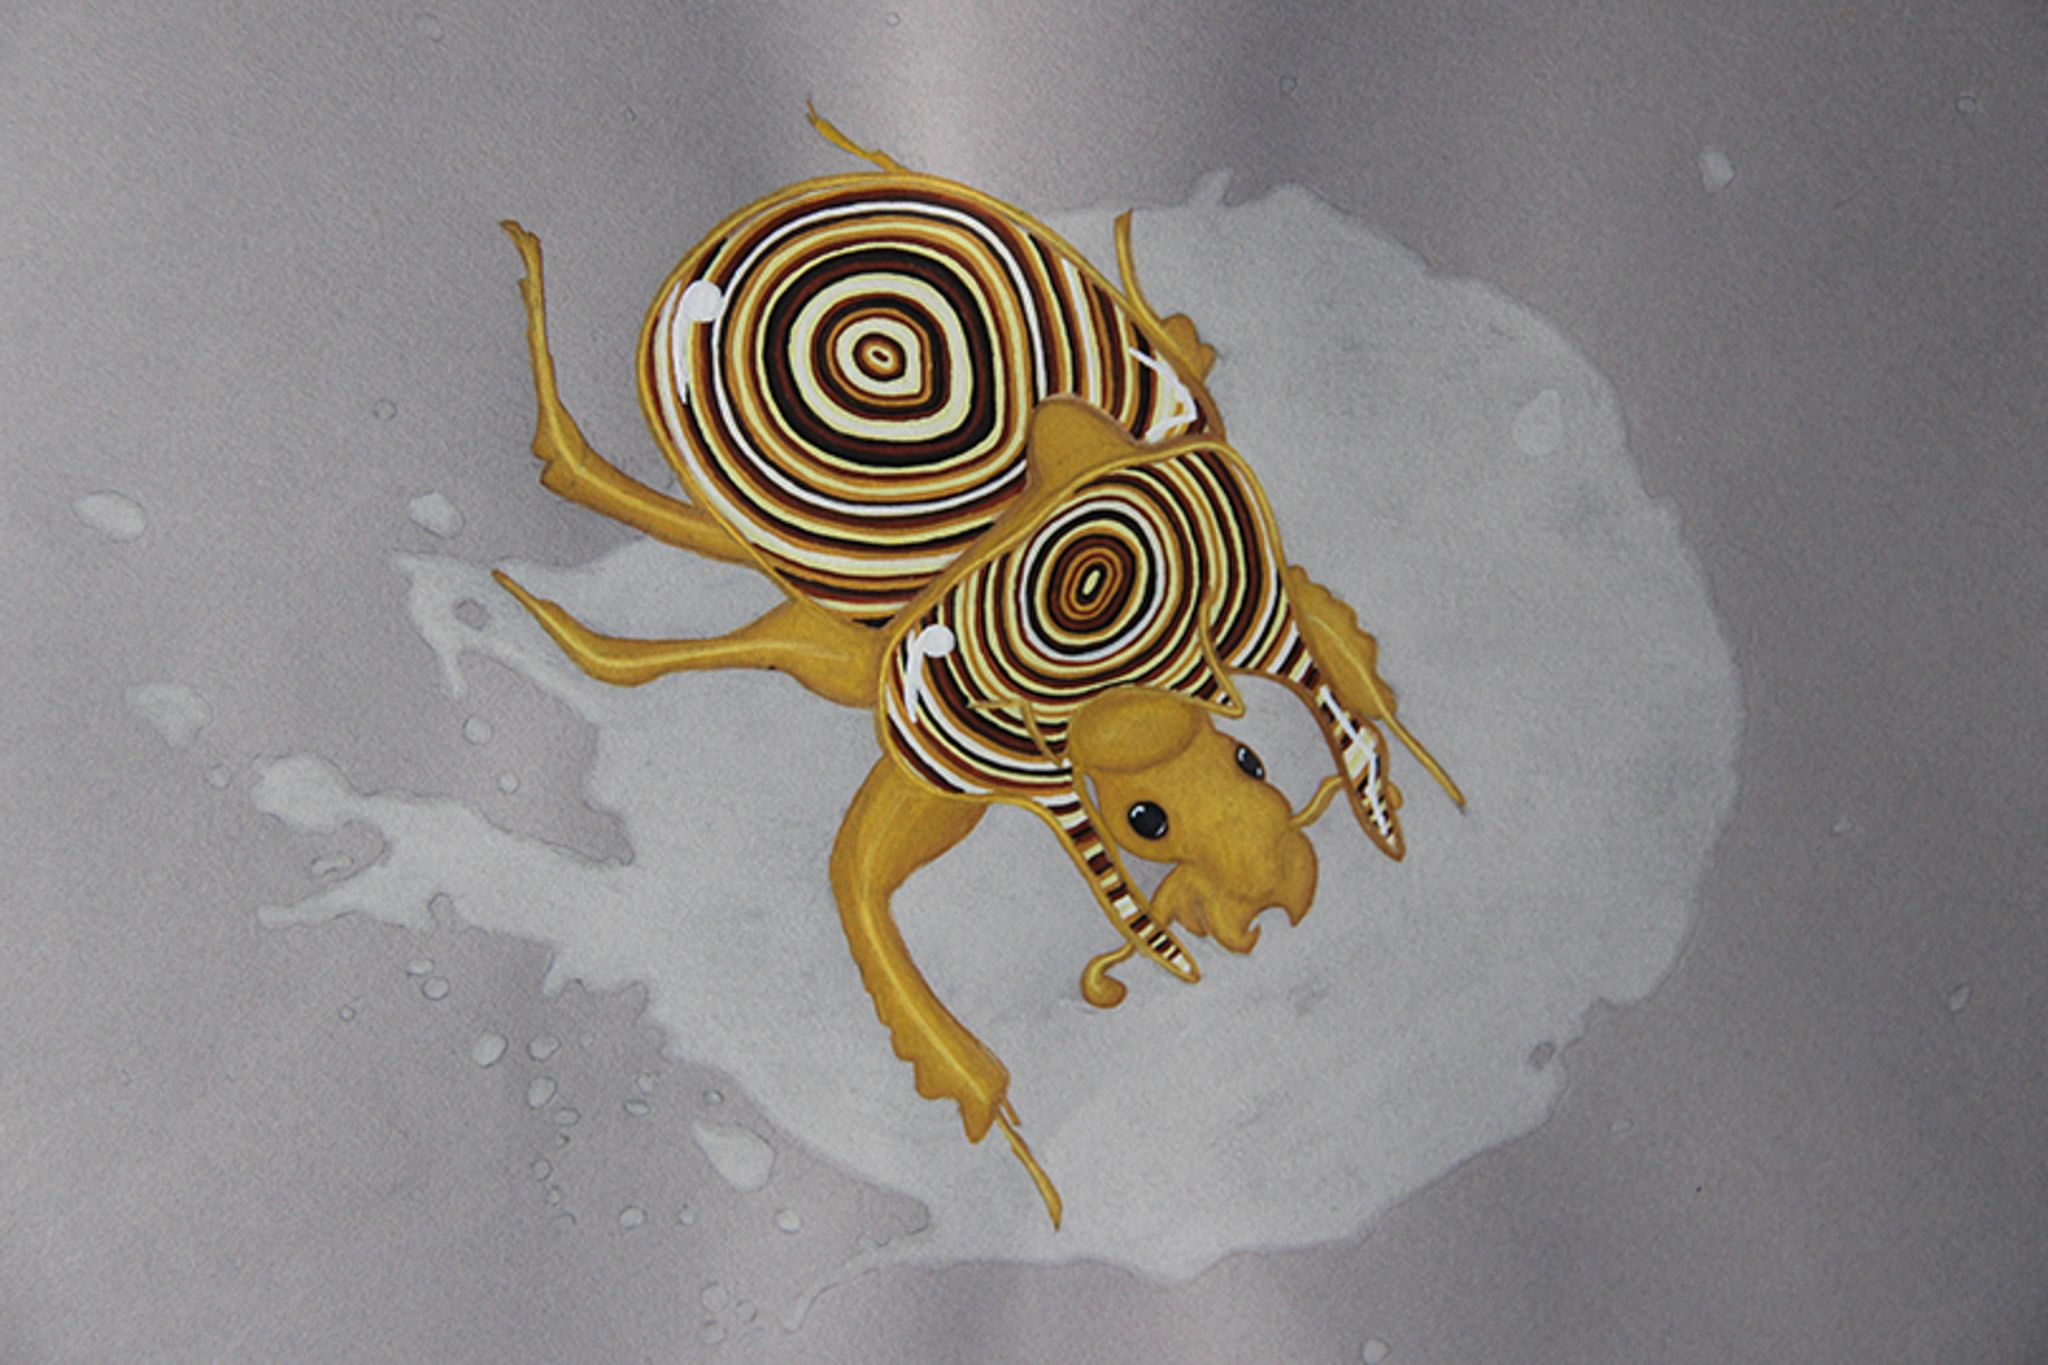 Agate minotaur beetle insect drawing